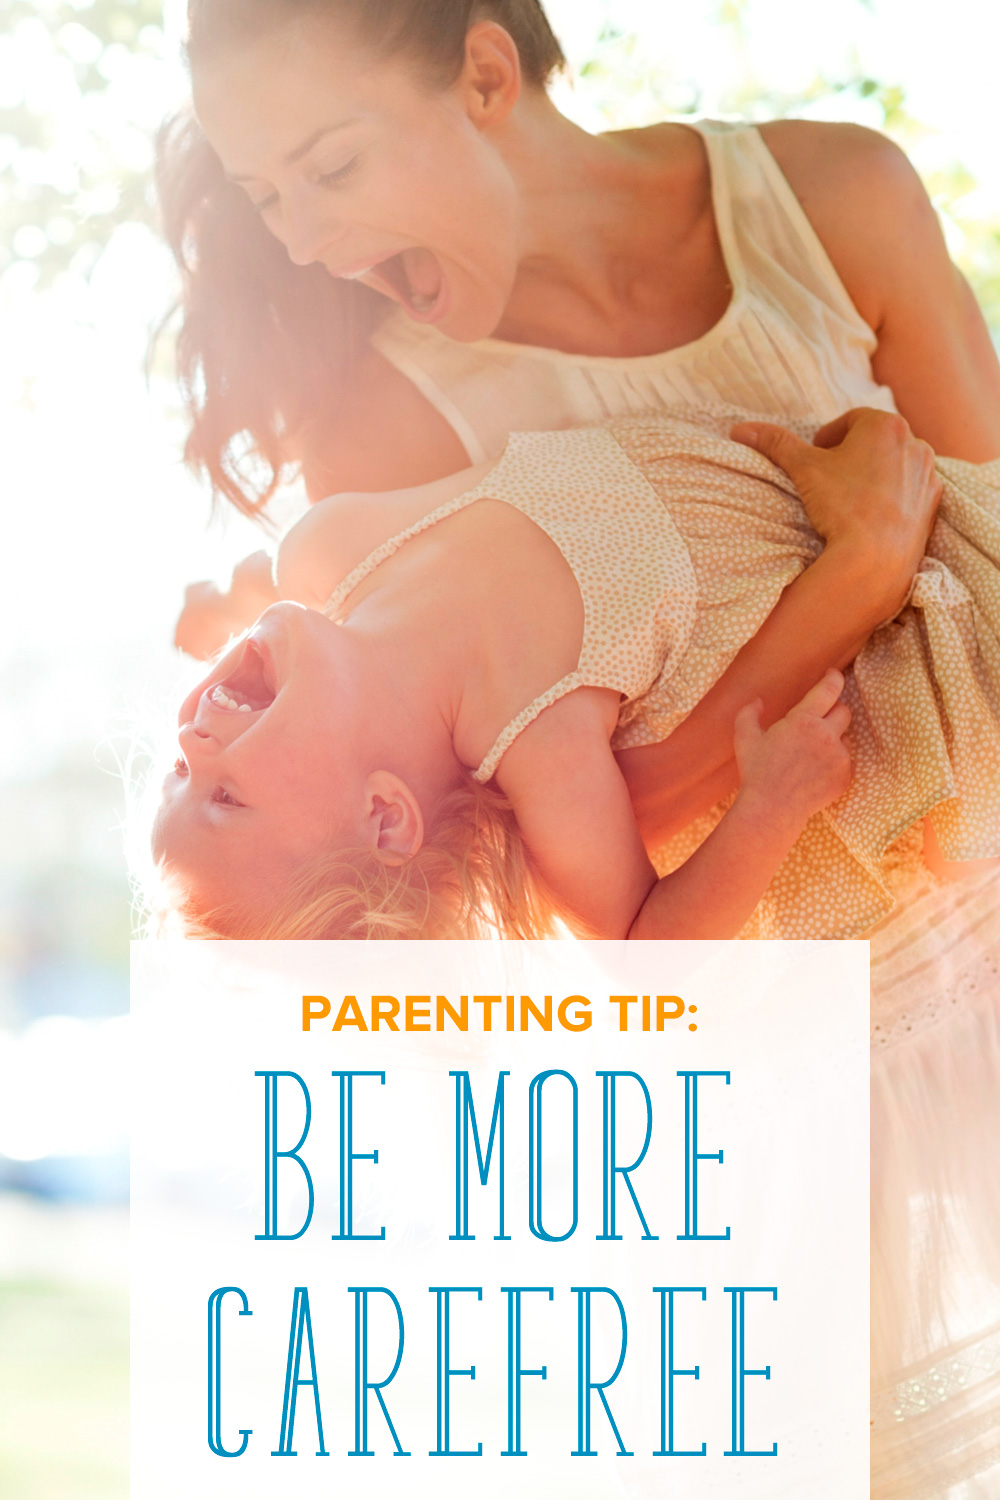 Parenting stress can make your day ten times worse than it needs to be. But if we can be more carefree, we can let go, look at the brighter side, and remember to enjoy parenthood.